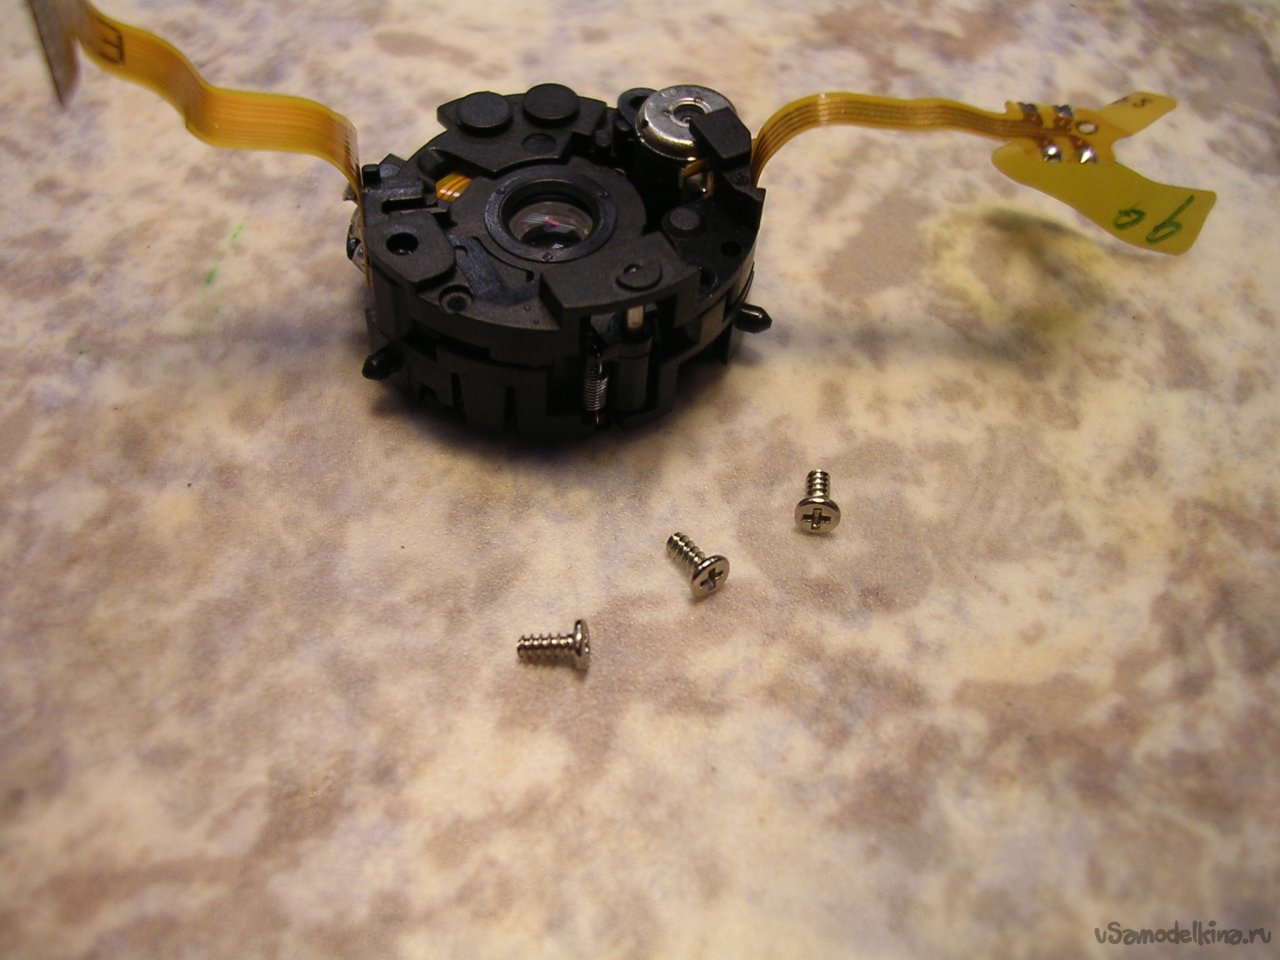 Cleaning the CANON ixus IIs camera lens from sand